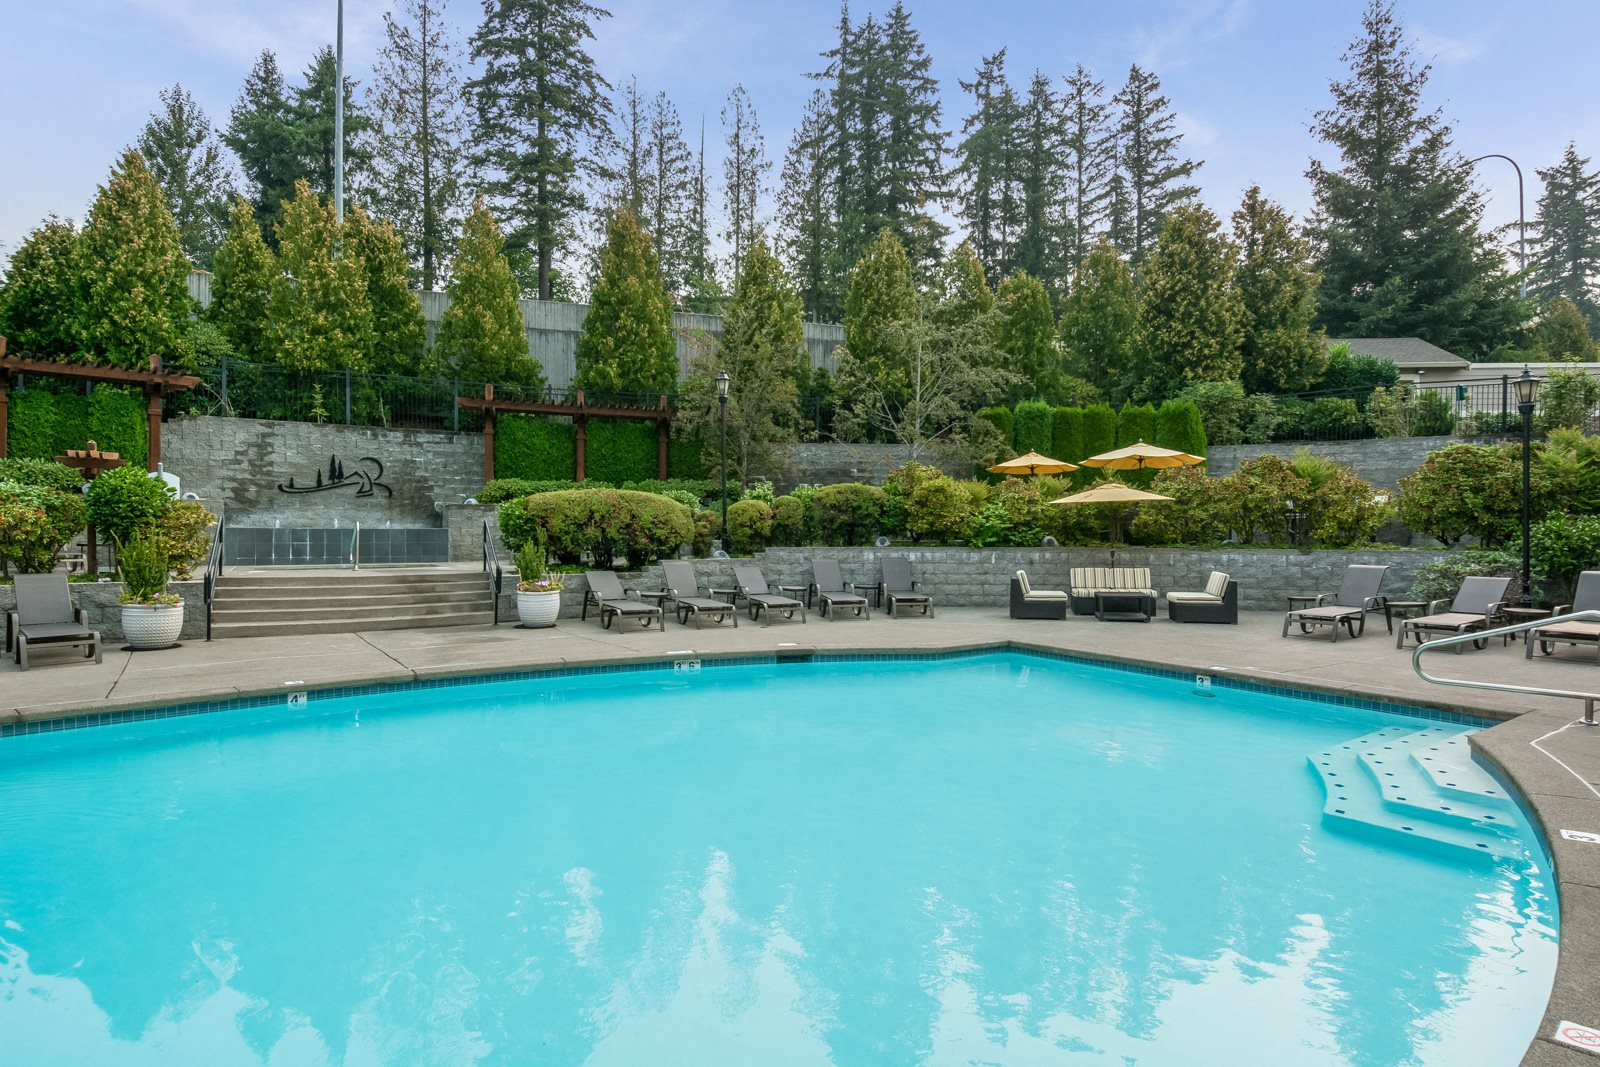 Luxurious Pool with Sundeck at Reflections by Windsor, Redmond, WA, 98052